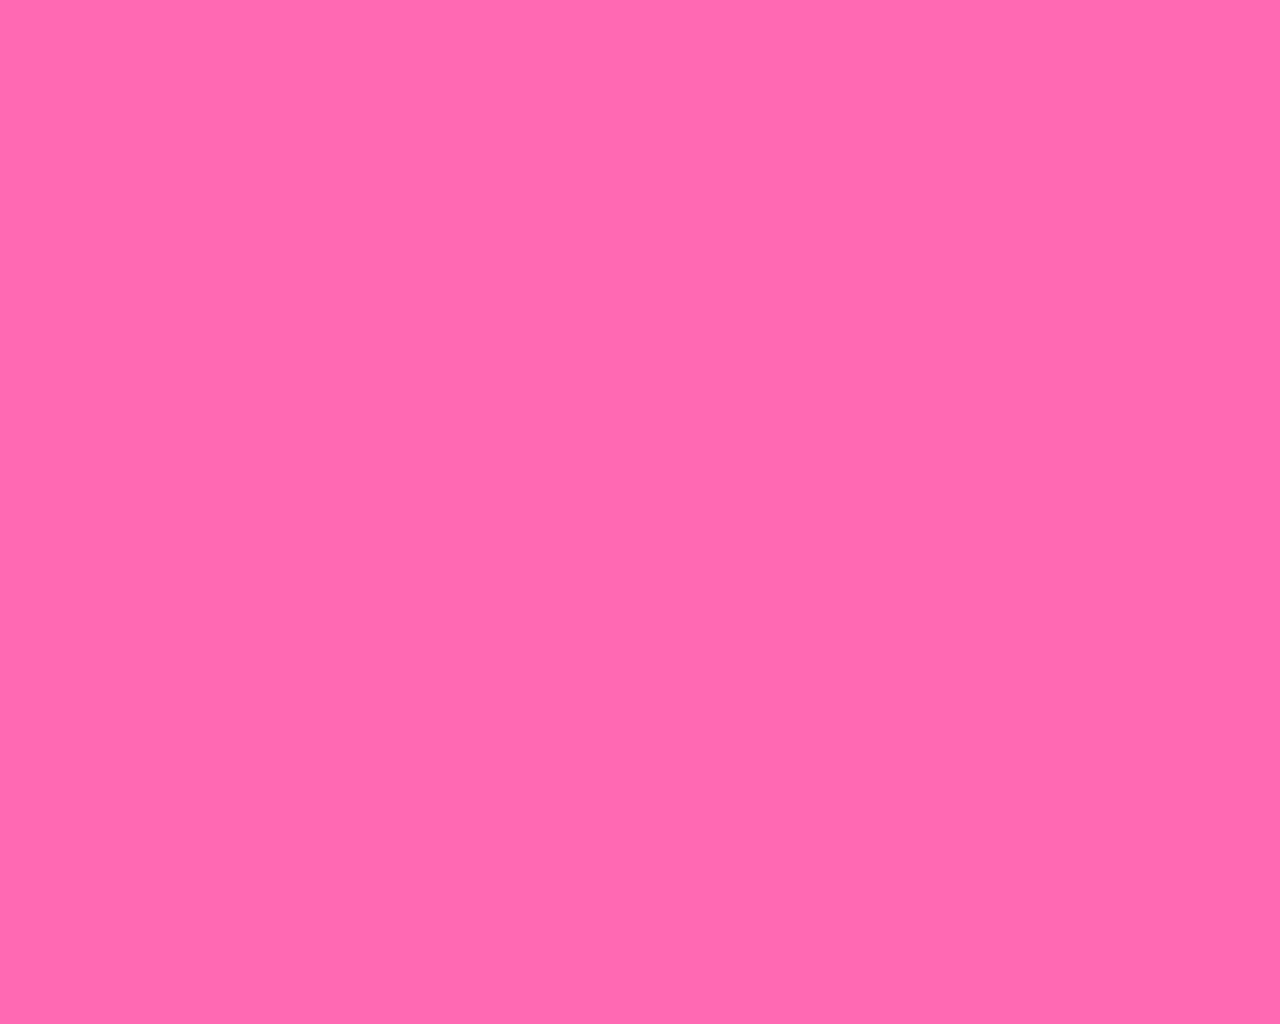 Hot Pink Solid Color Backgrounds Images Pictures   Becuo 1280x1024